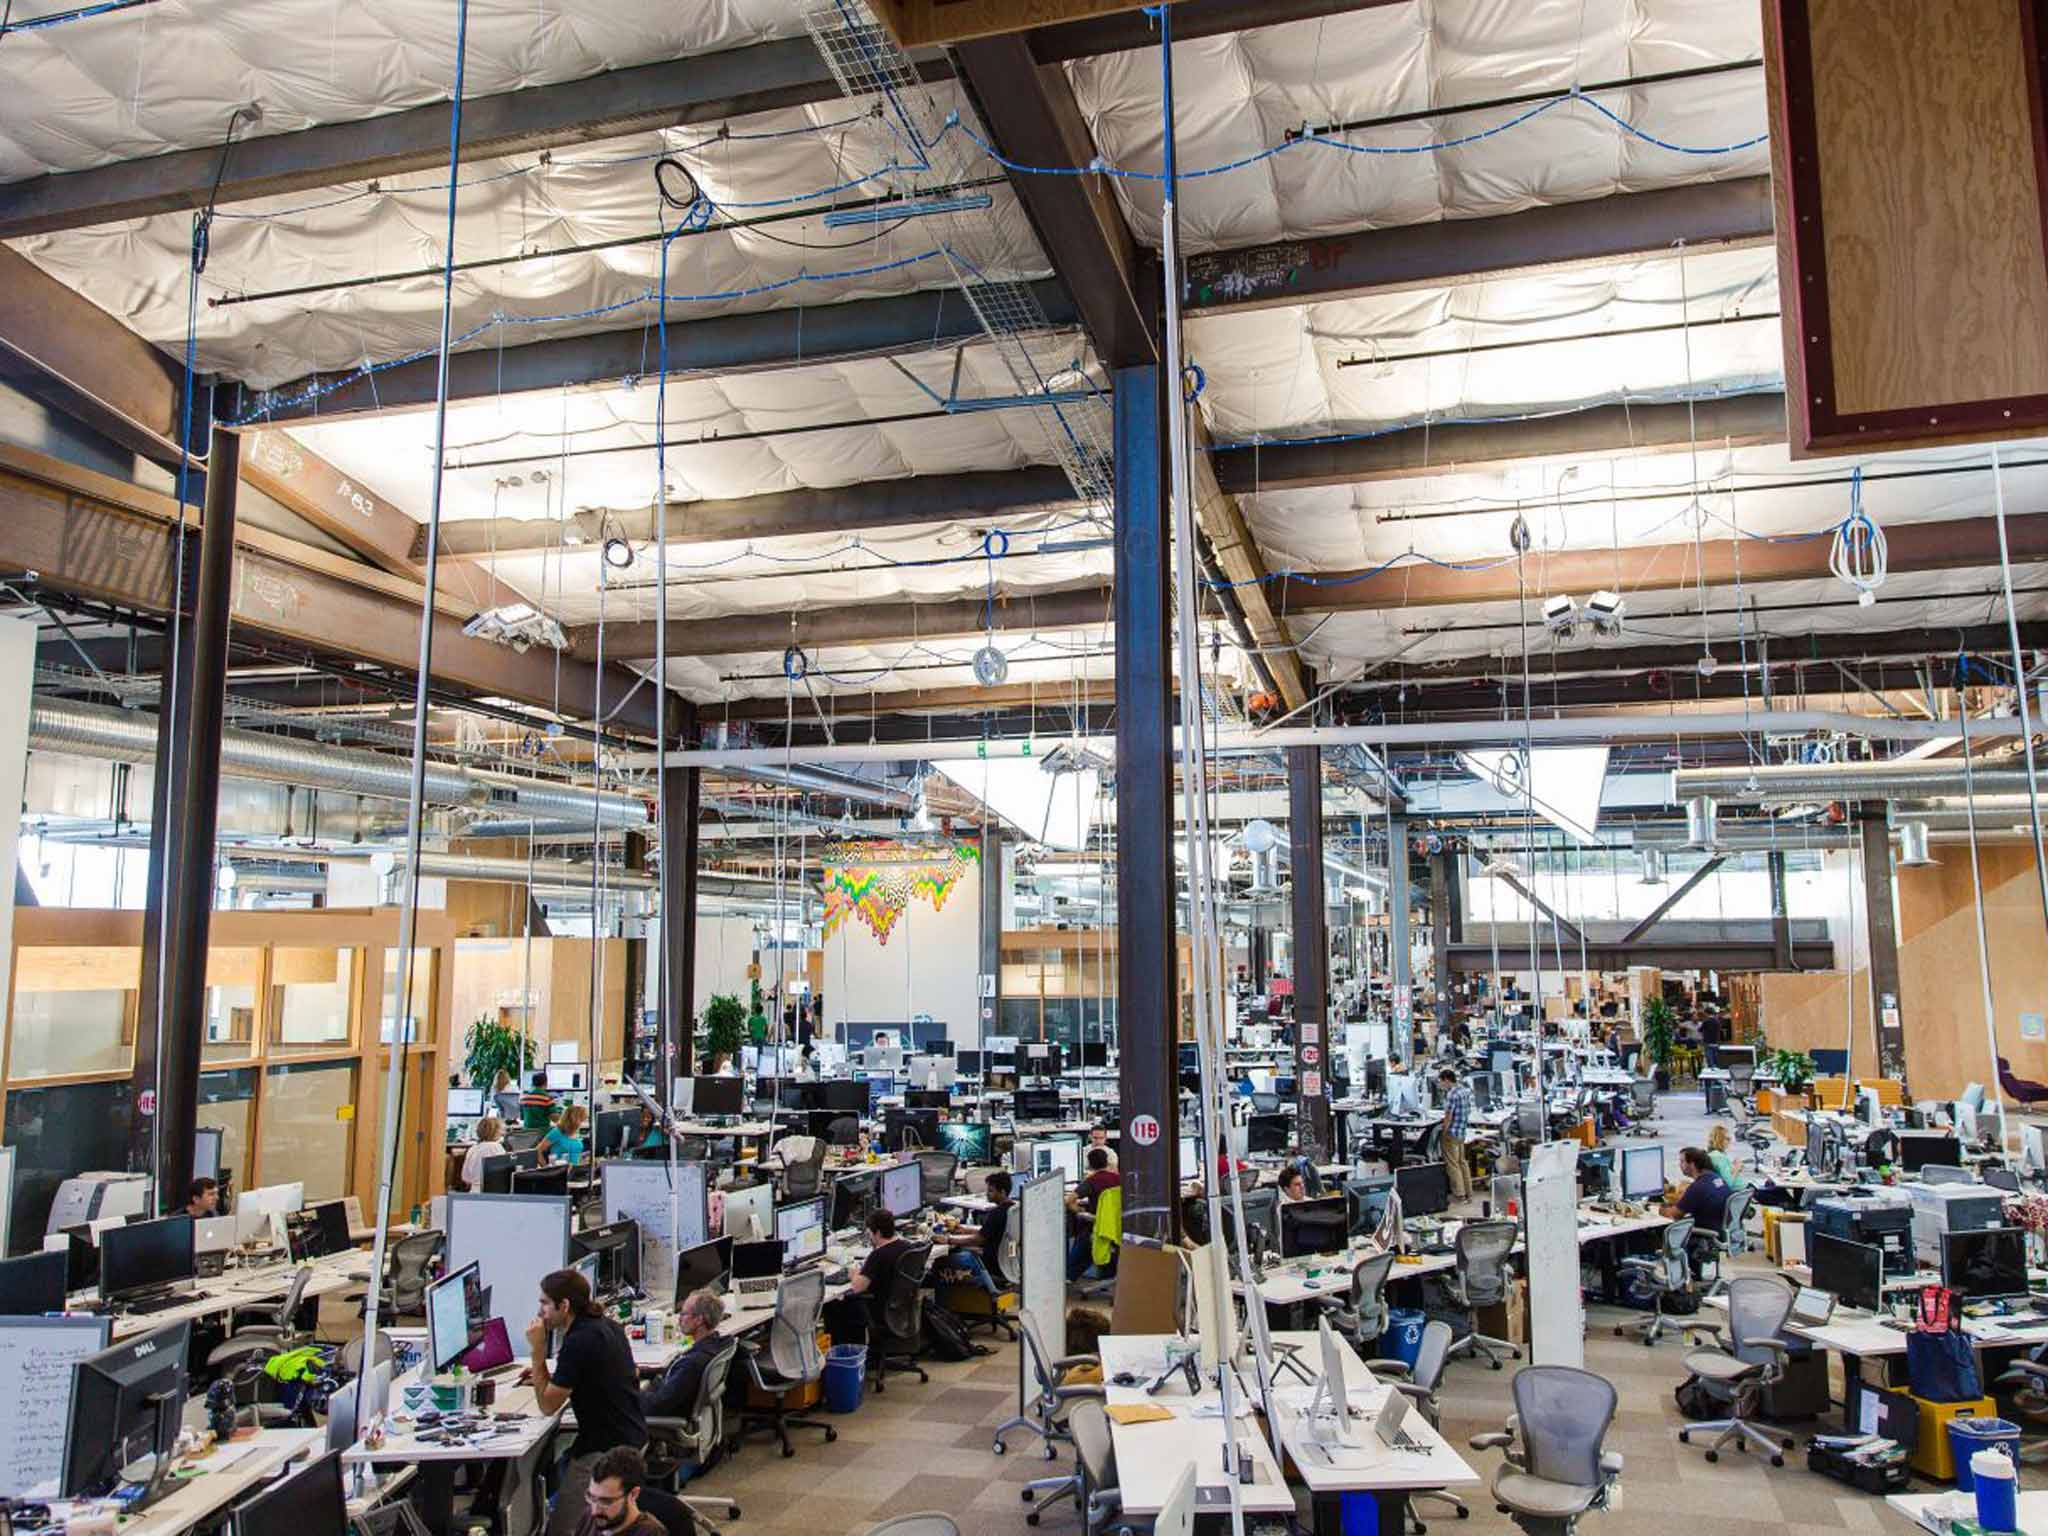 Facebook offices